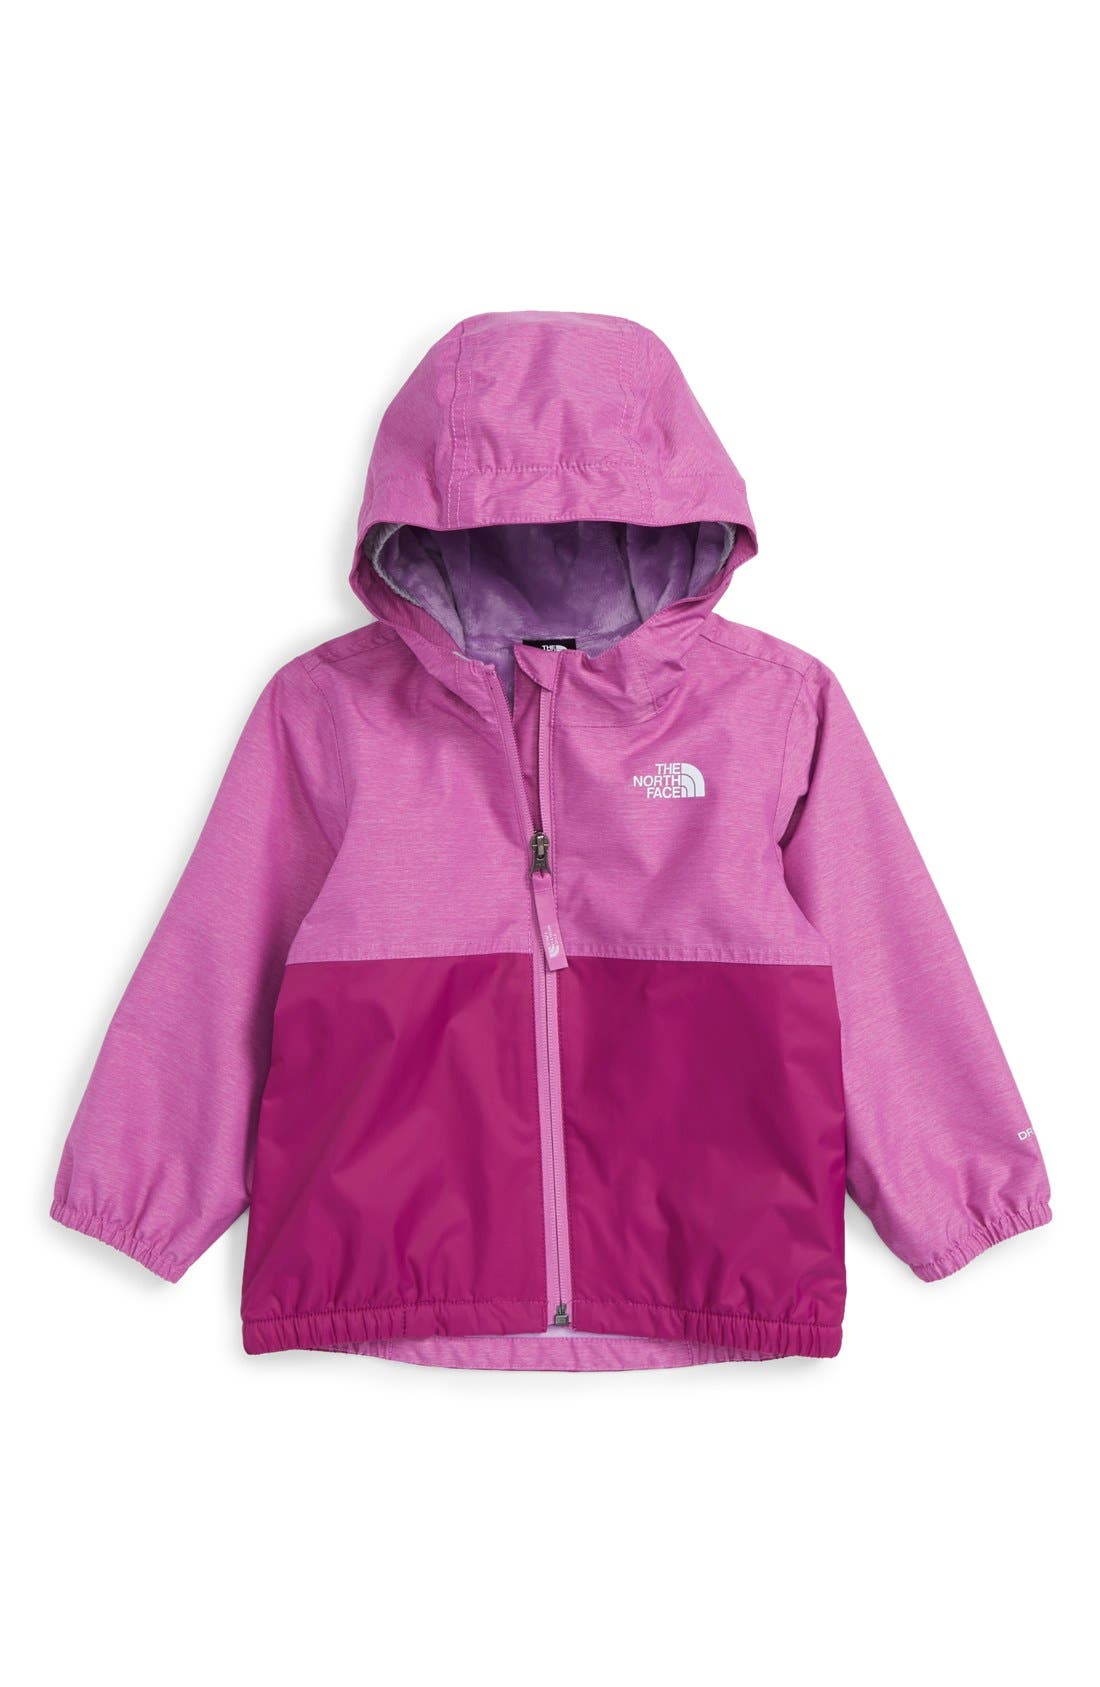 Alternate Image 1 Selected - The North Face 'Warm Storm' Hooded Waterproof Jacket (Baby Girls)